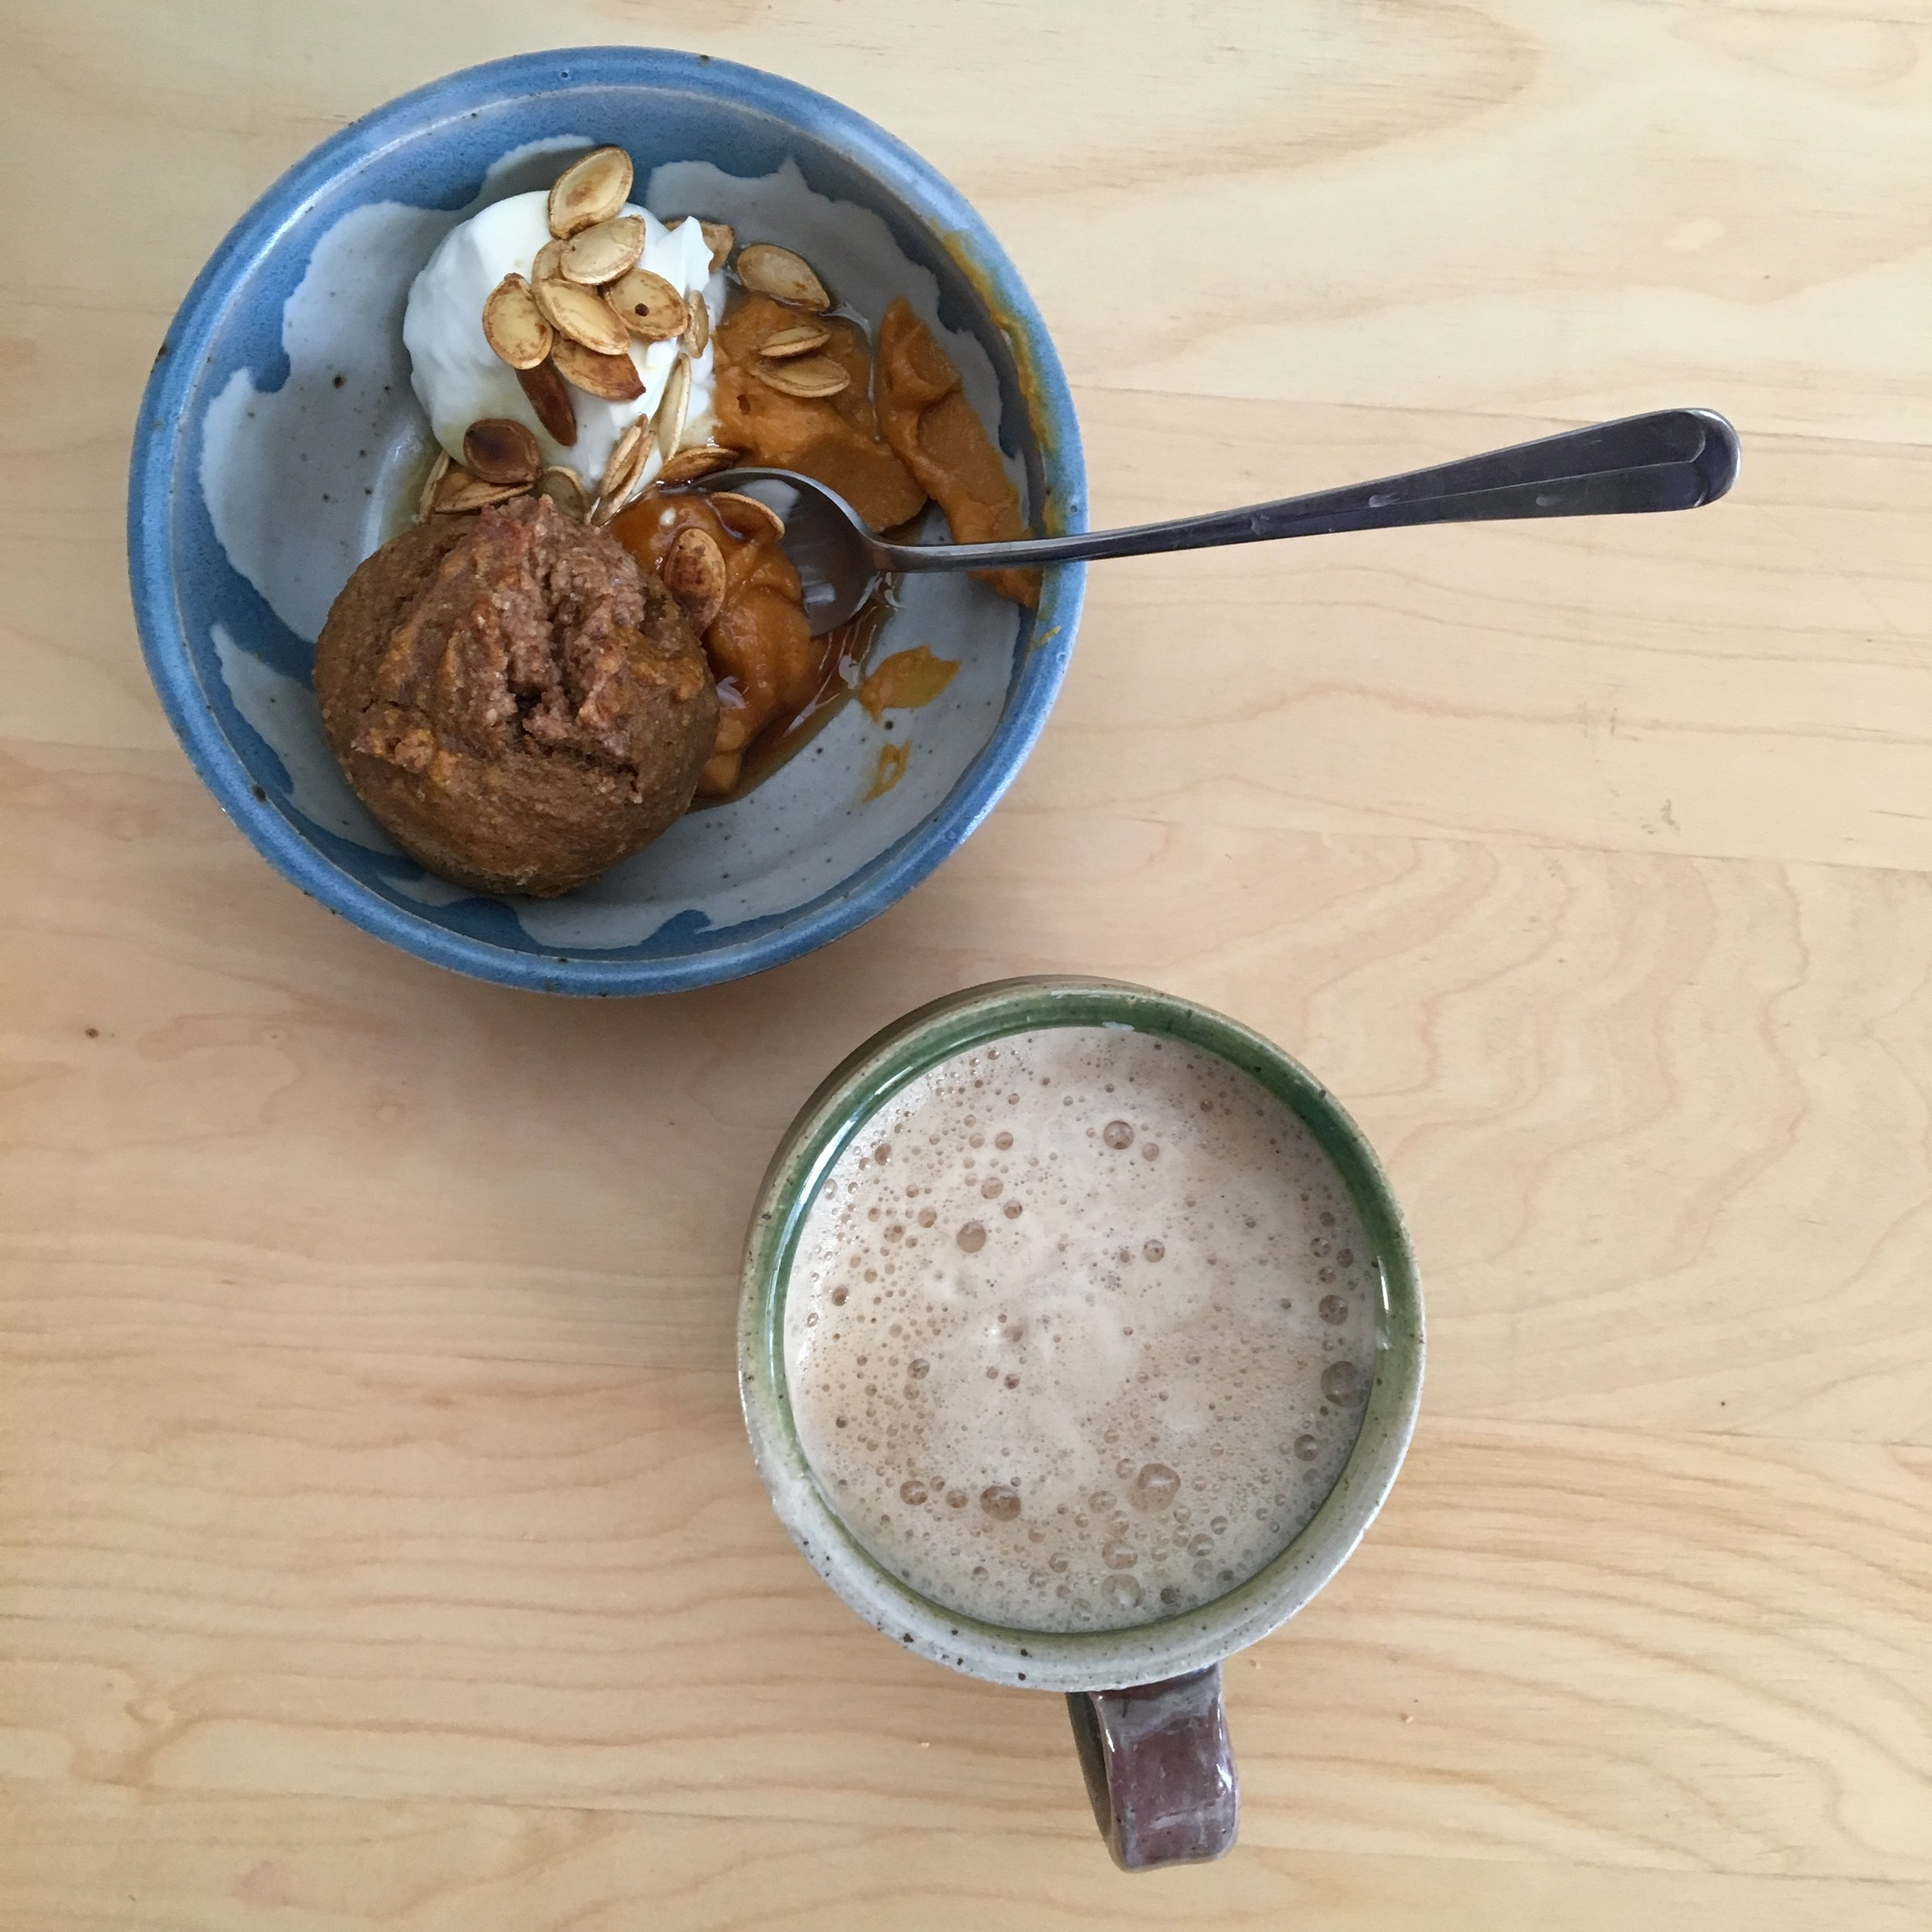 Breakfast often feels like poetry for me.  Here I quietly eat a sweet potato muffin with a side of full-fat yogurt and clasp my hands around a homemade latte for warmth.  My belly, heart and mind are one for a few delicious bites and sips.